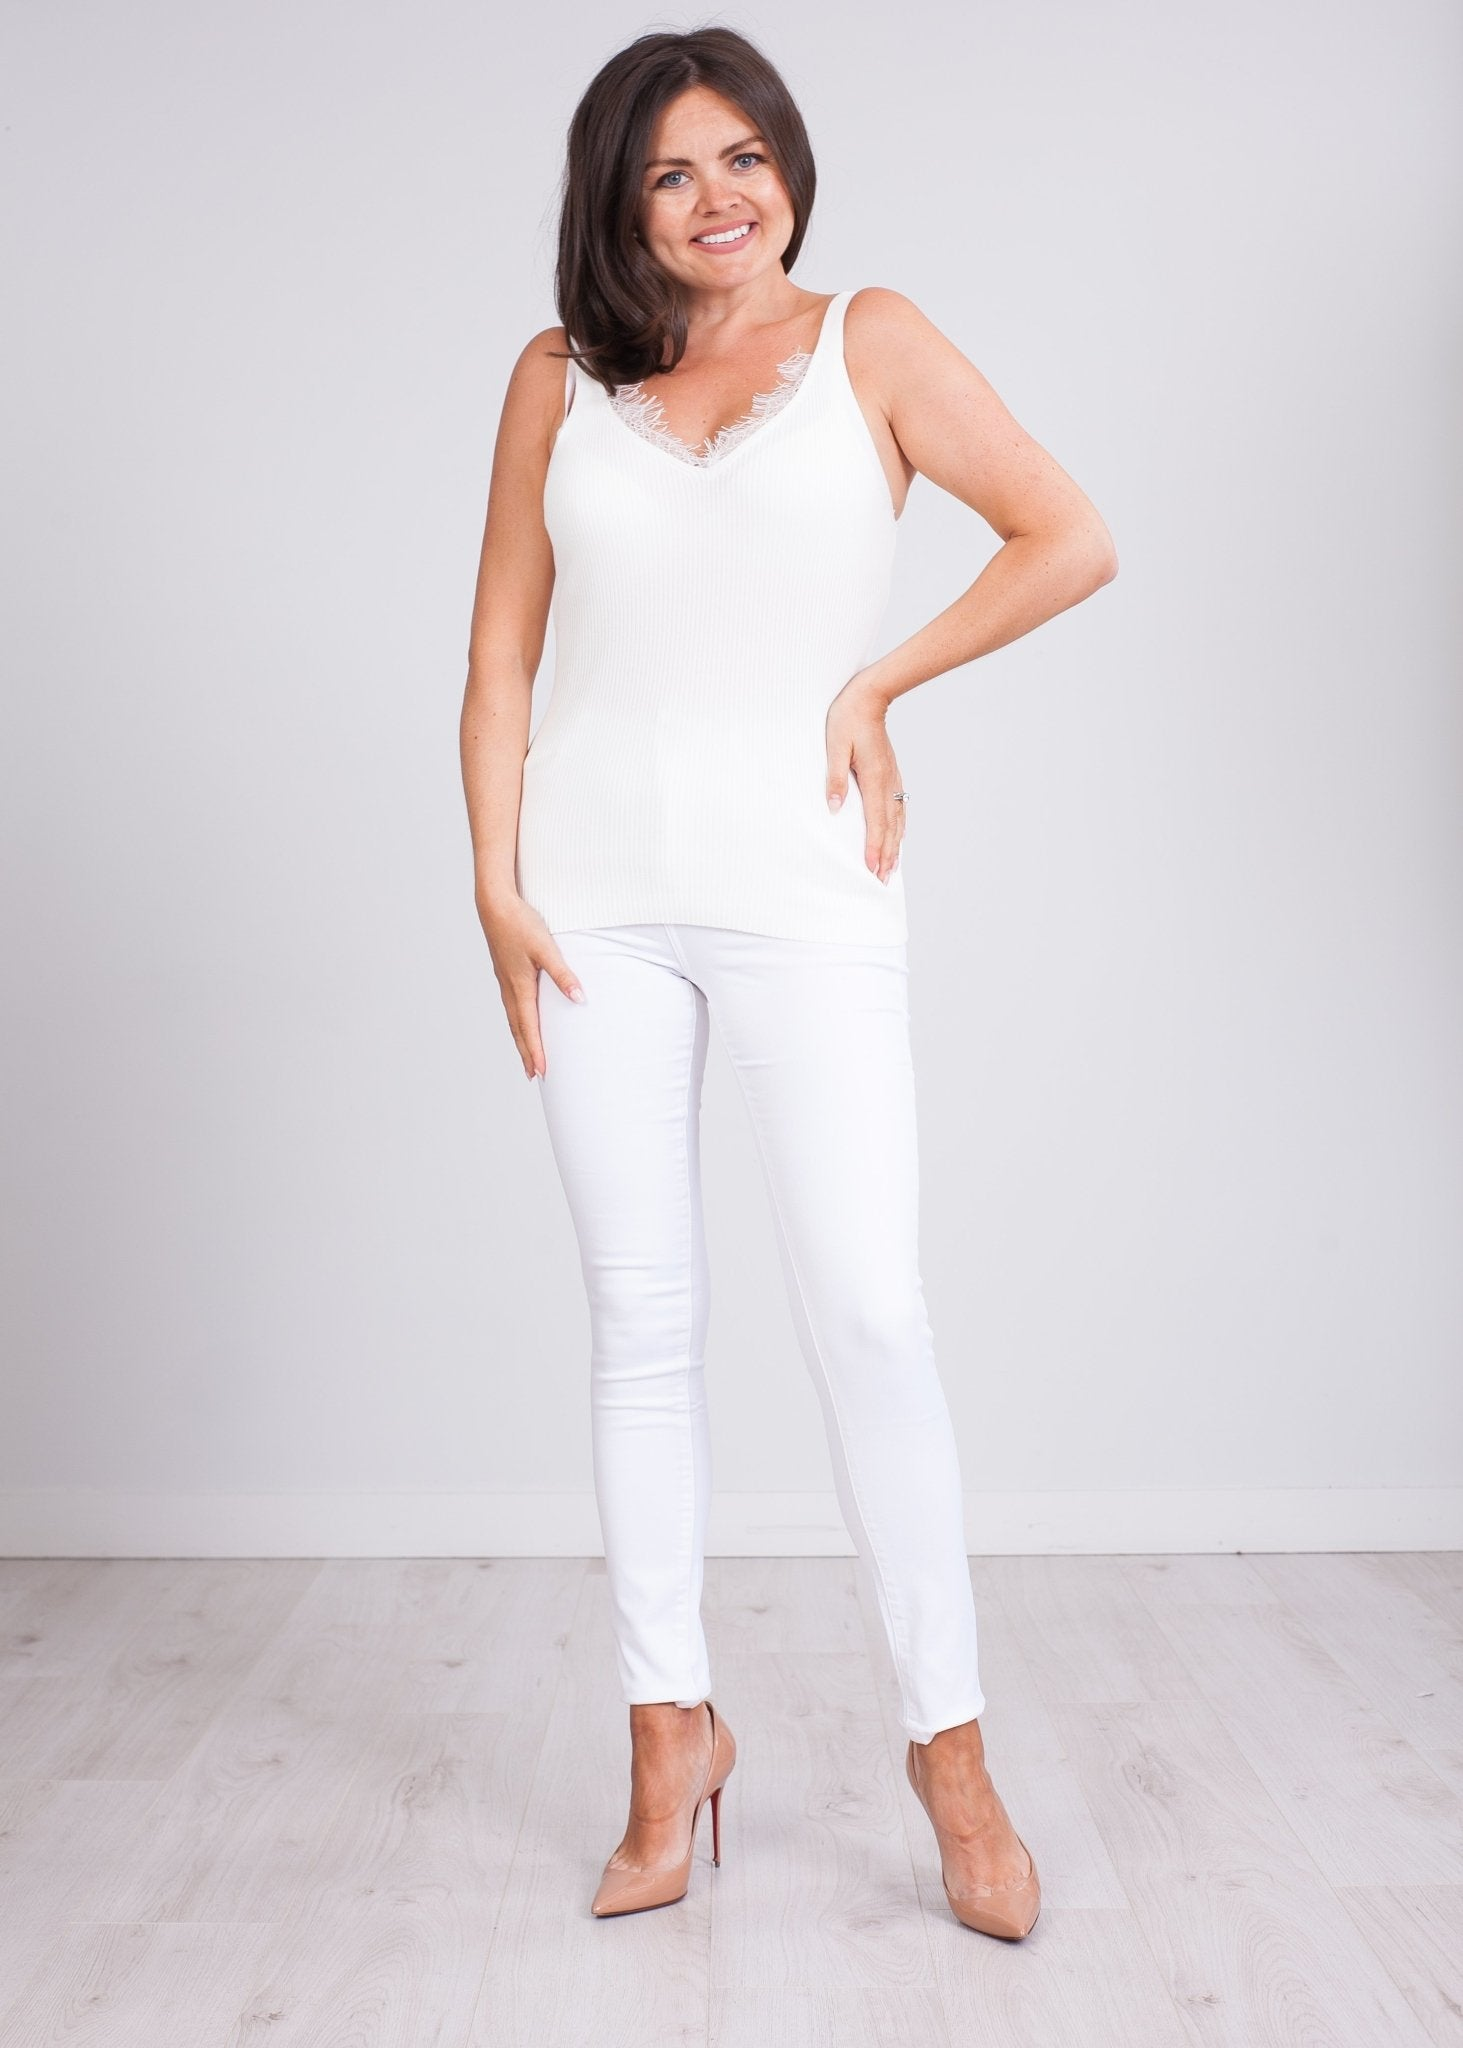 Cherie Cream Fine Knit Cami - The Walk in Wardrobe